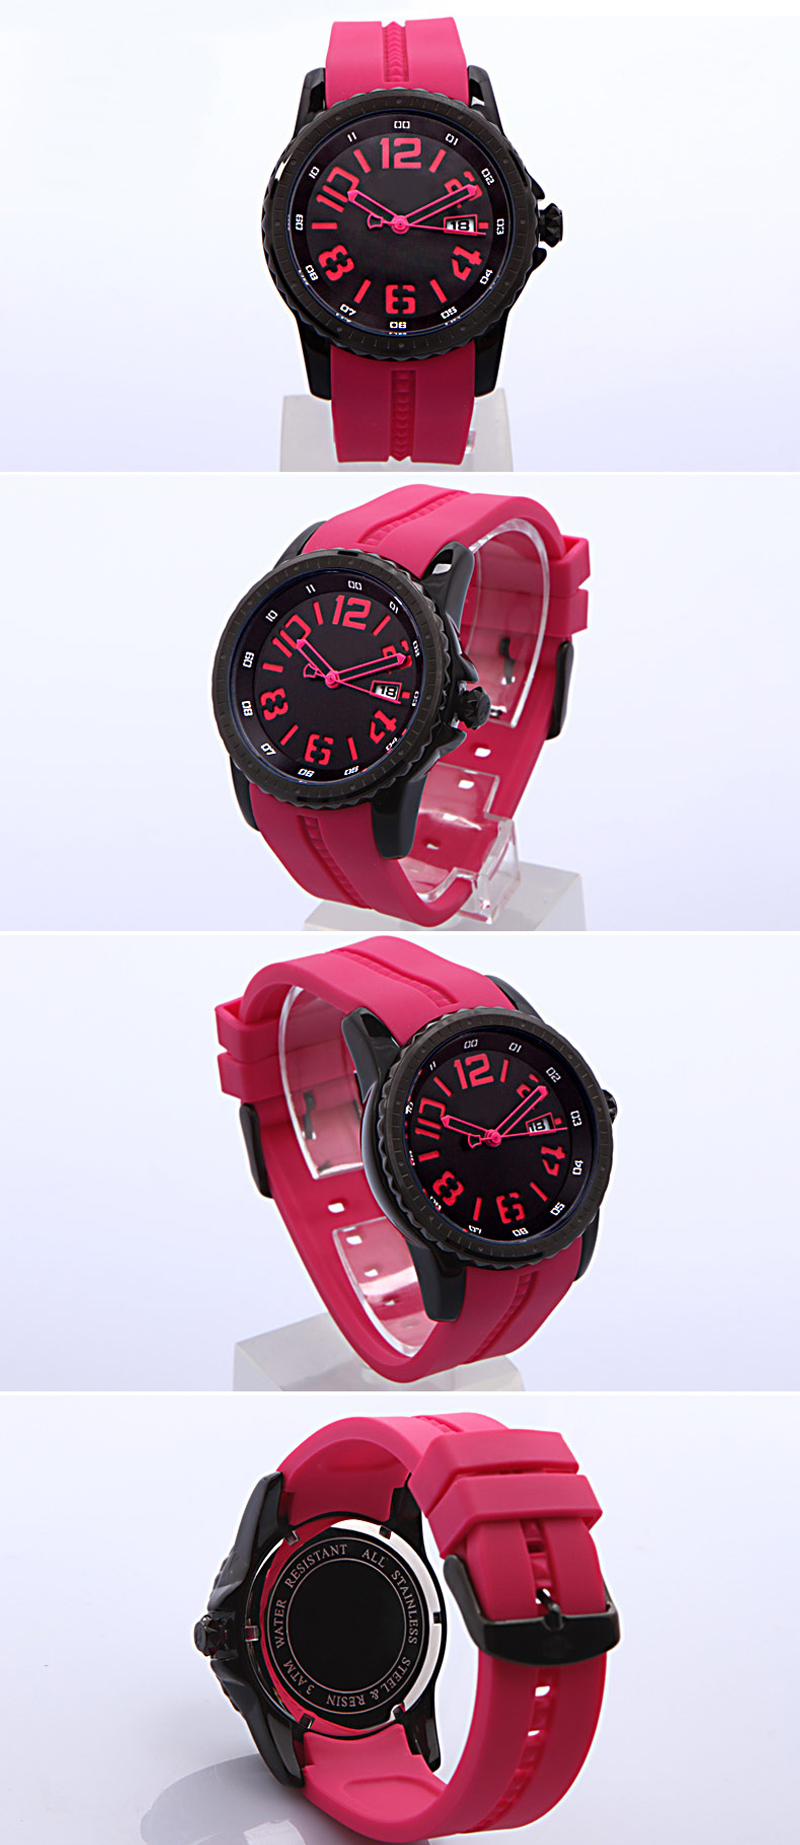 Assisi brand Leather band promotional wrist watch, fashion watch